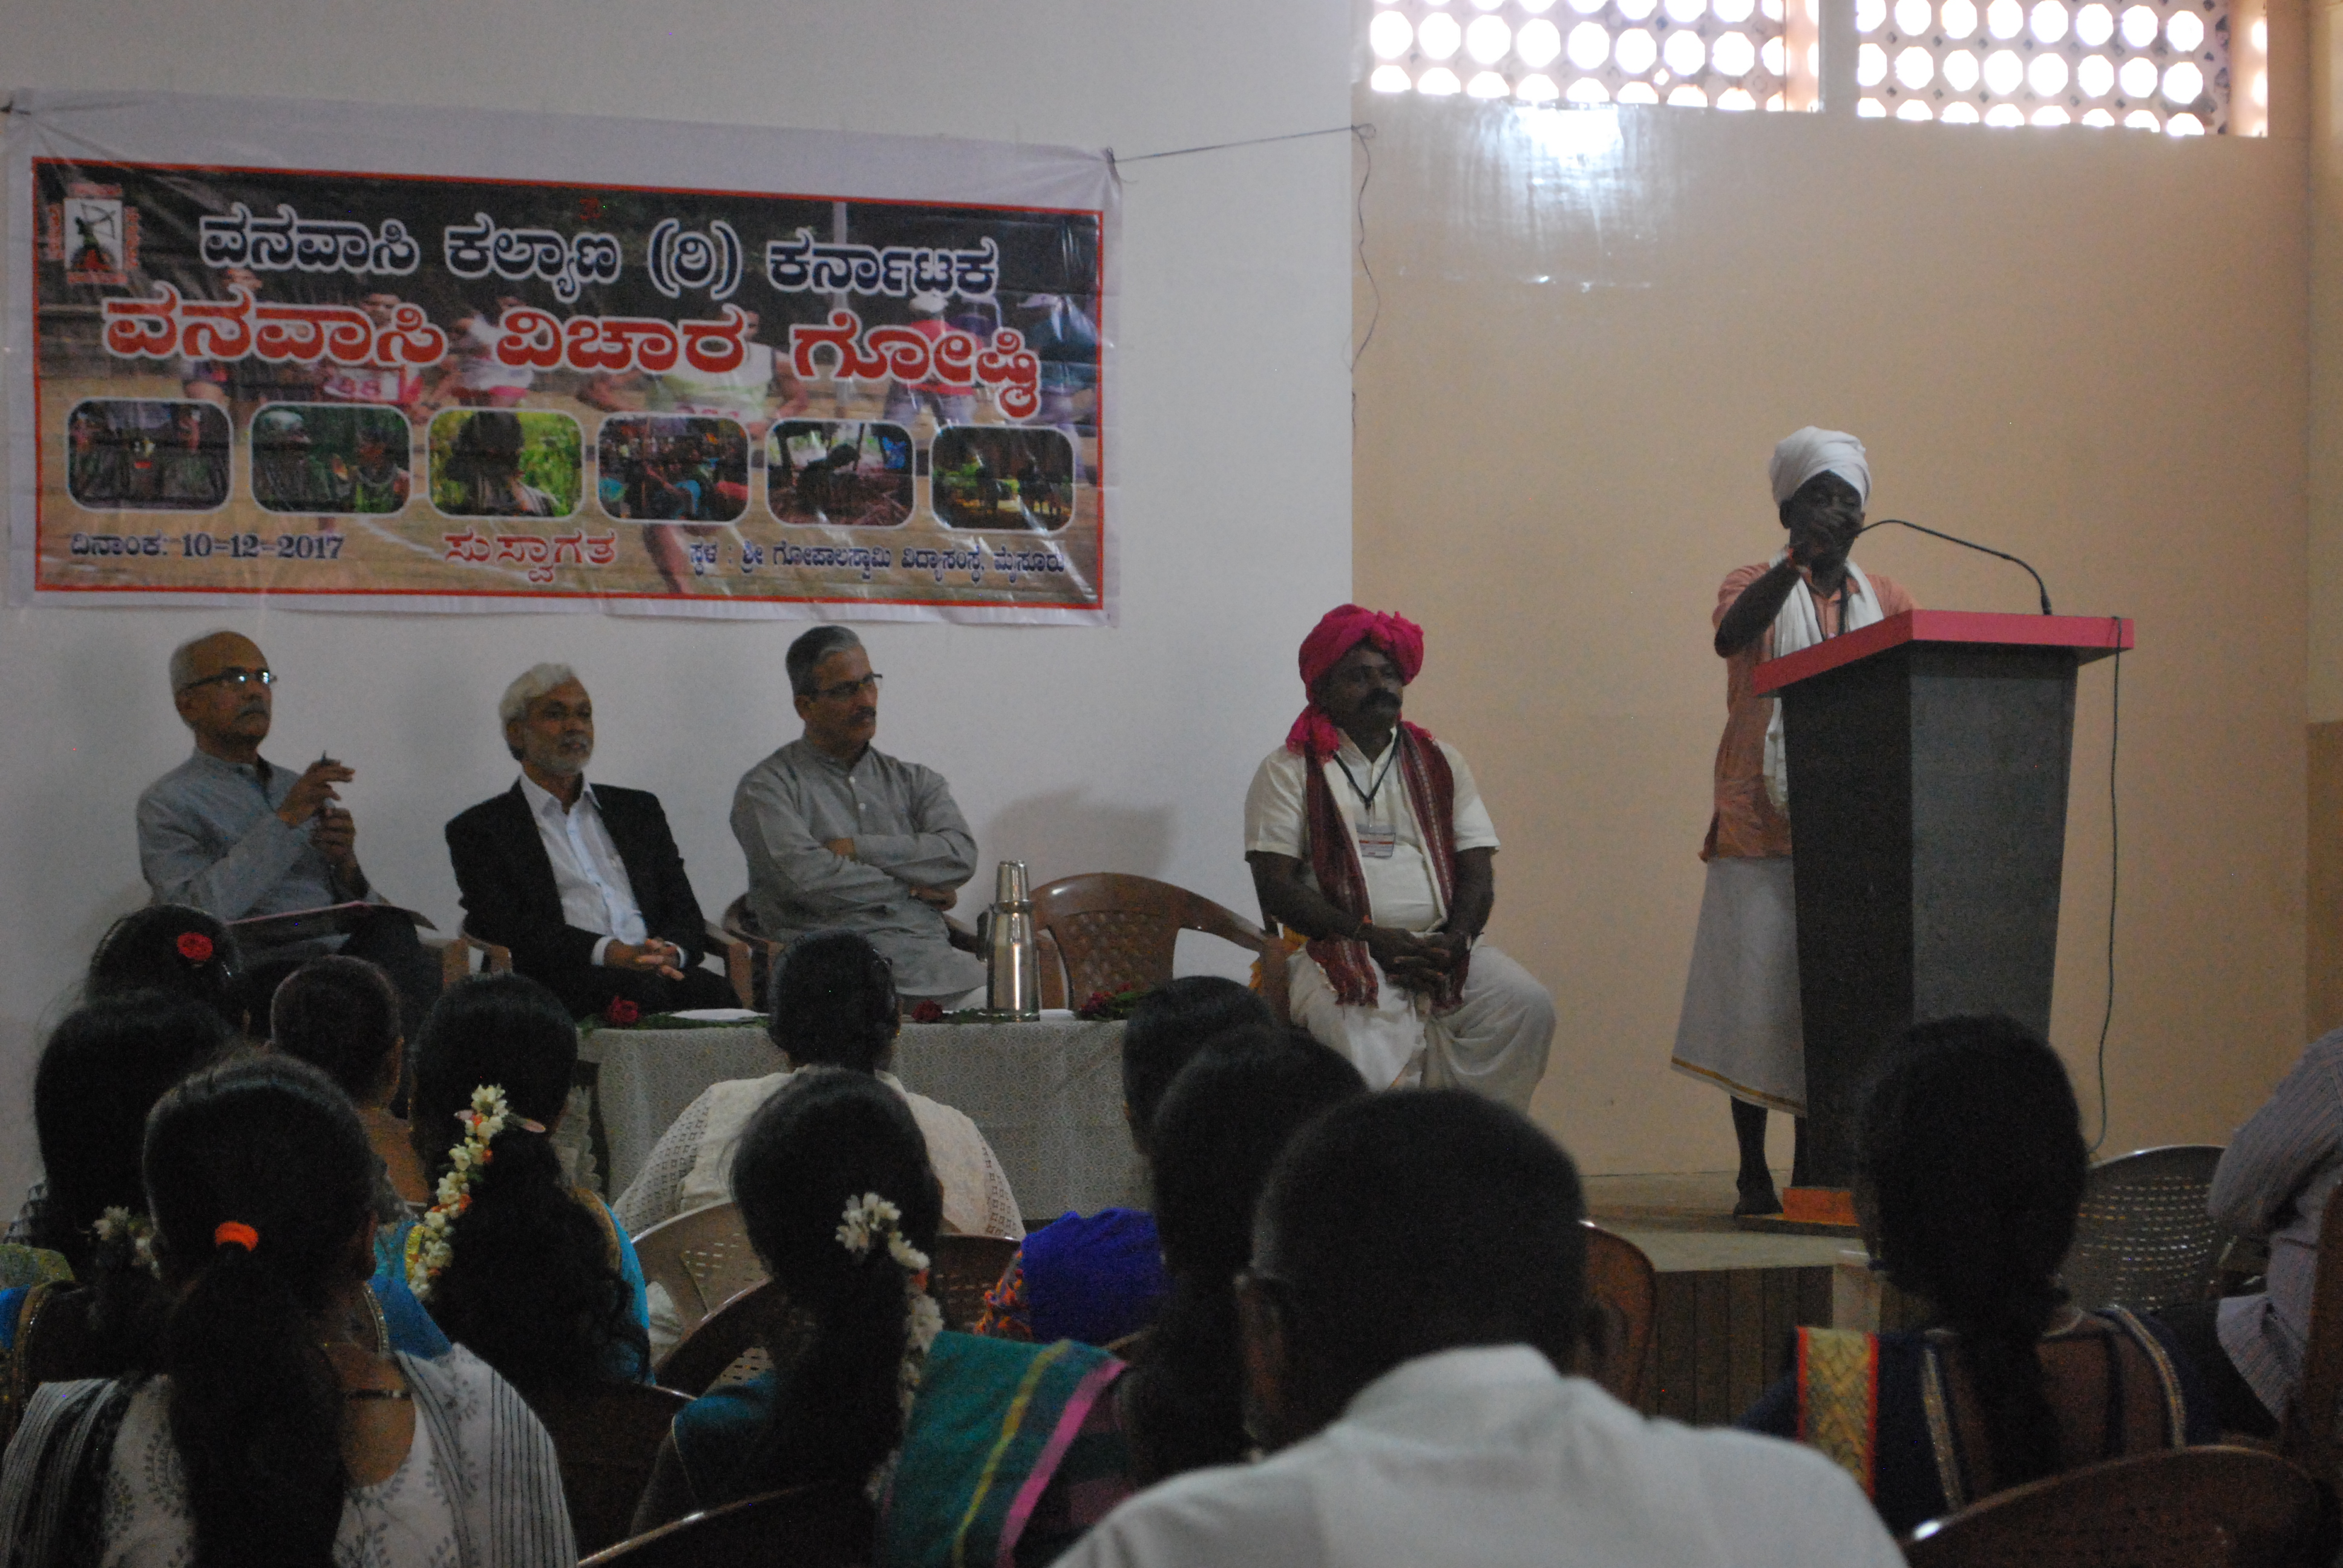 'Education to girl means education to the family' seminar on Tribal development by Vanavasi Kalyan Karnataka